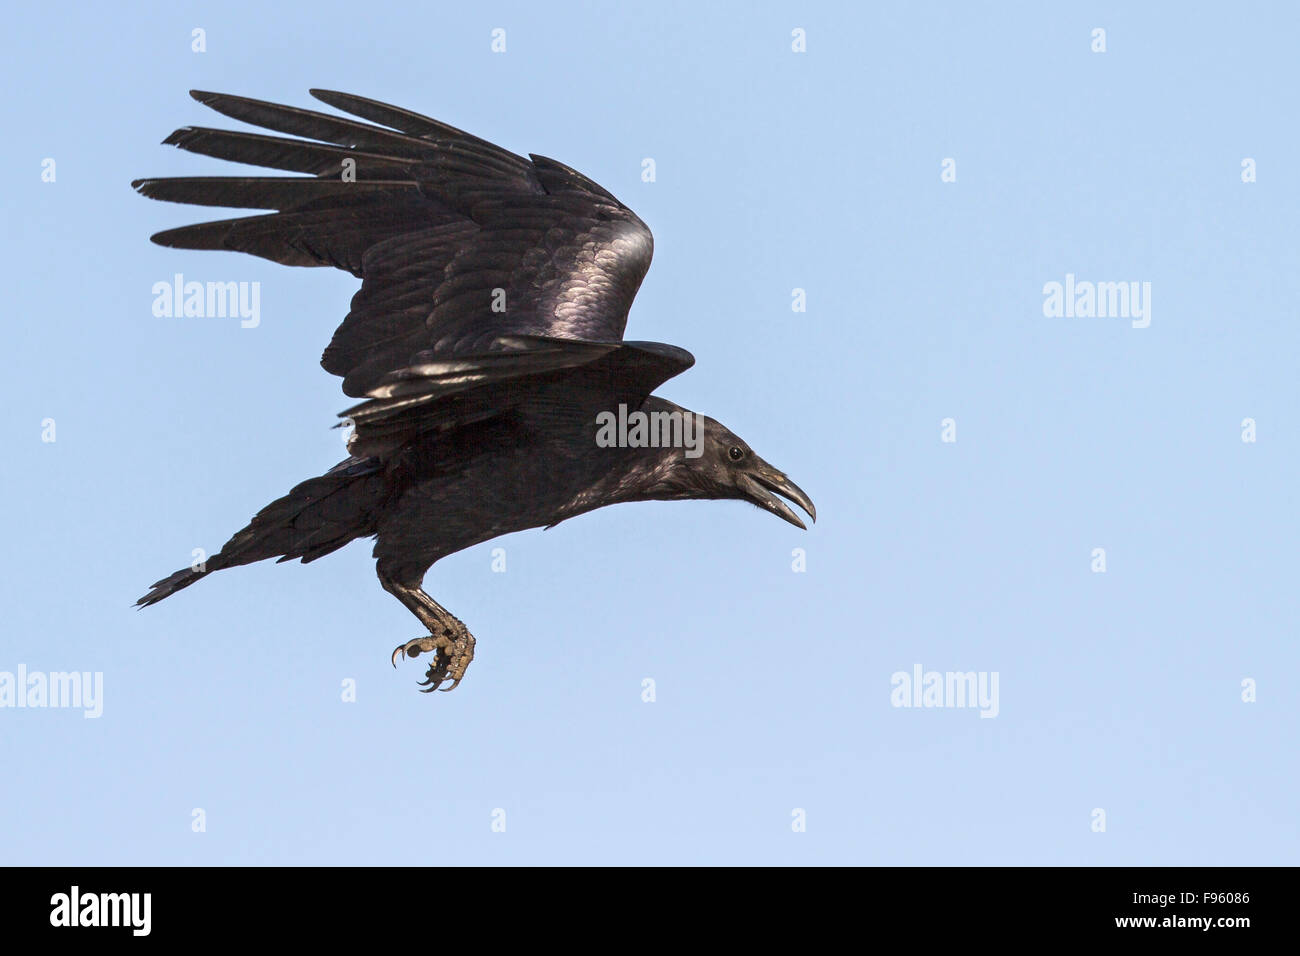 Common Raven (Corvus corax) flying over a marsh in central Washington State, USA. - Stock Image